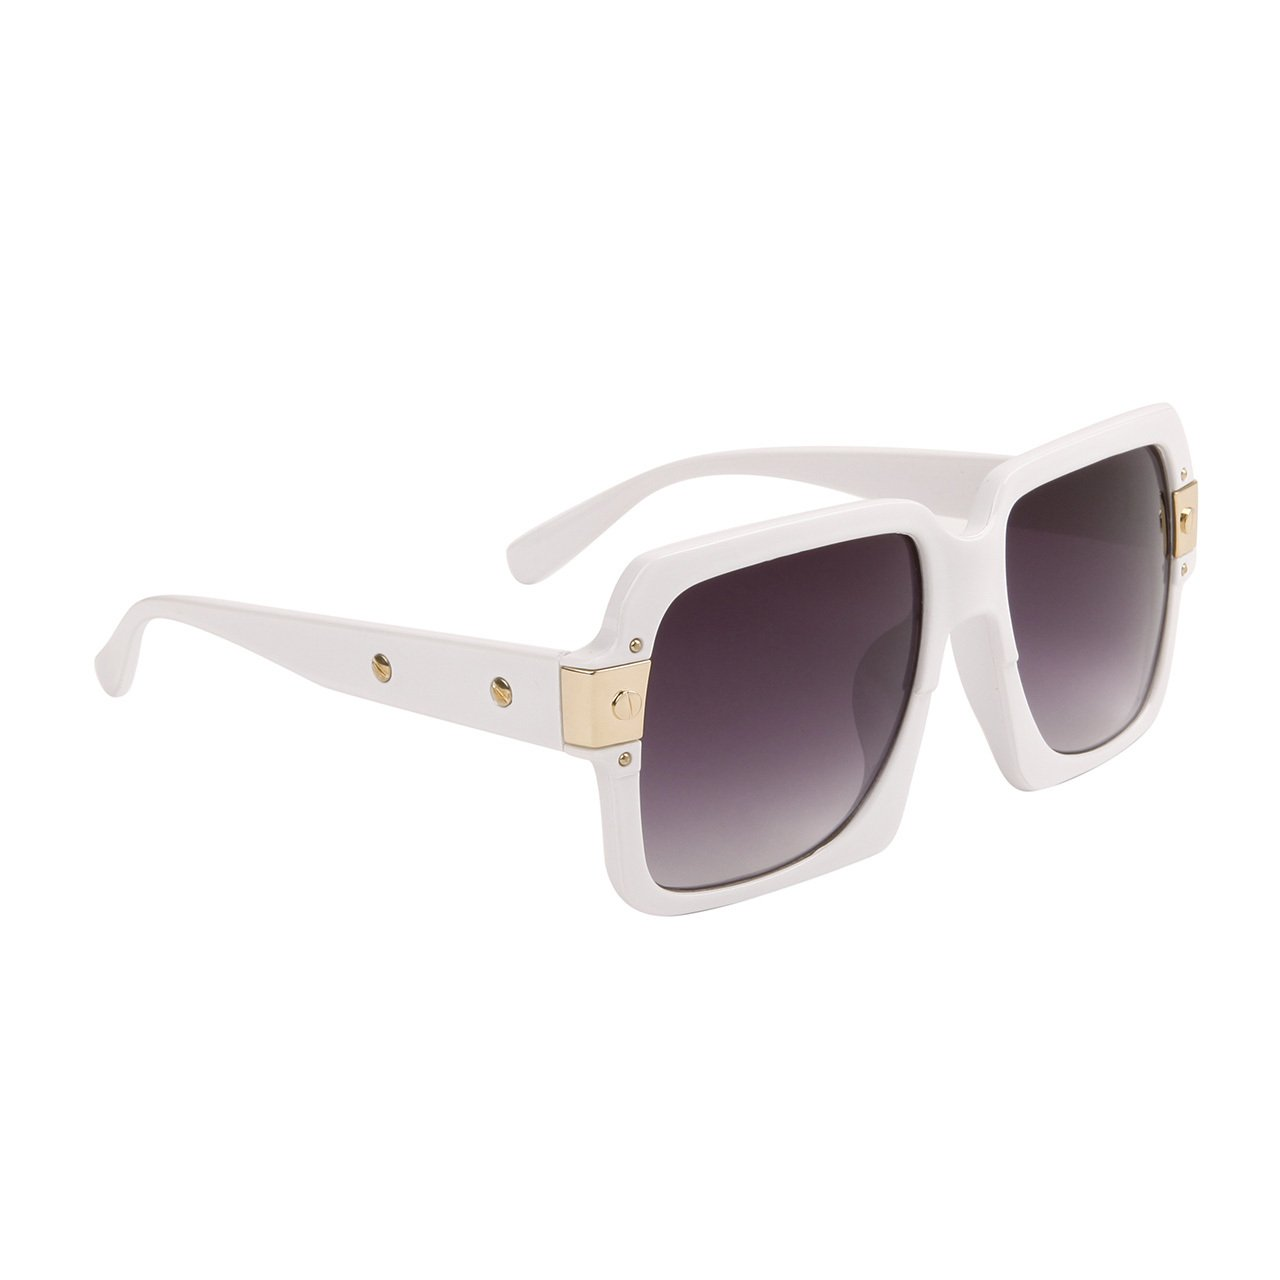 WOMEN'S LARGE DESIGNER INSPIRED WHITE SQUARE SUNGLASSES TOP DEPARTMENT STORE QUALITY